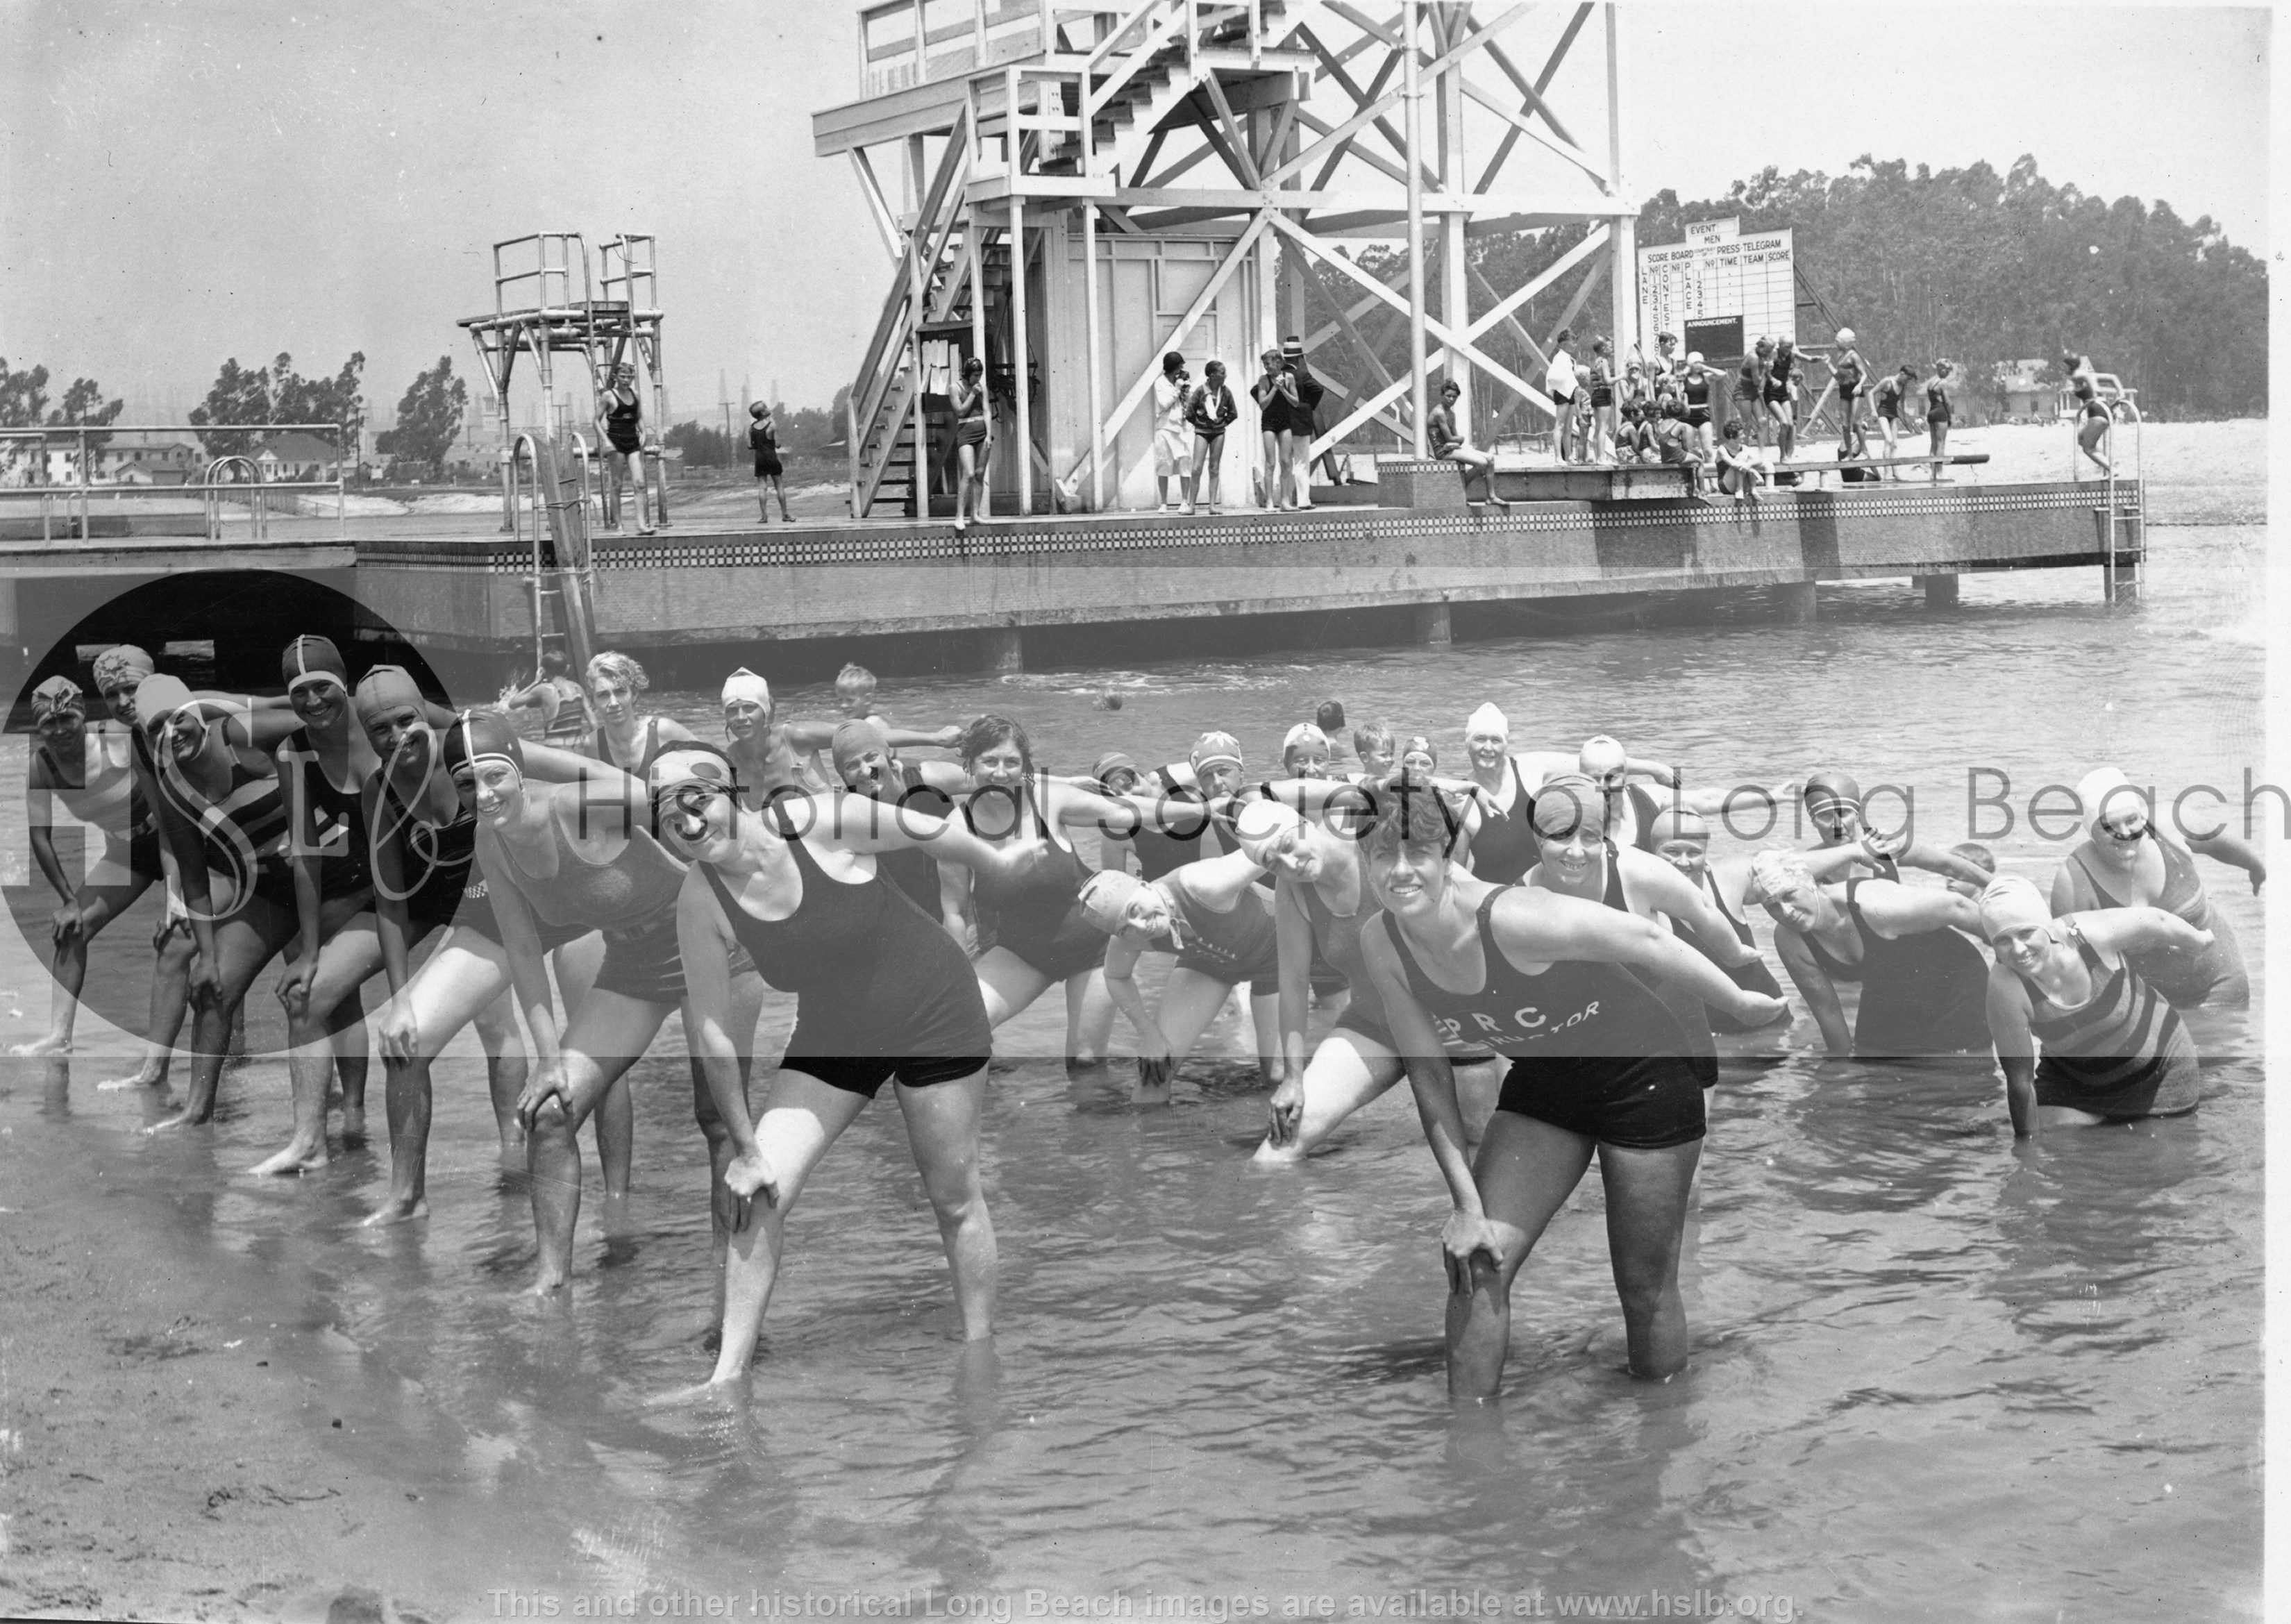 Colorado Lagoon swim lesson, 1935 Vintage photo